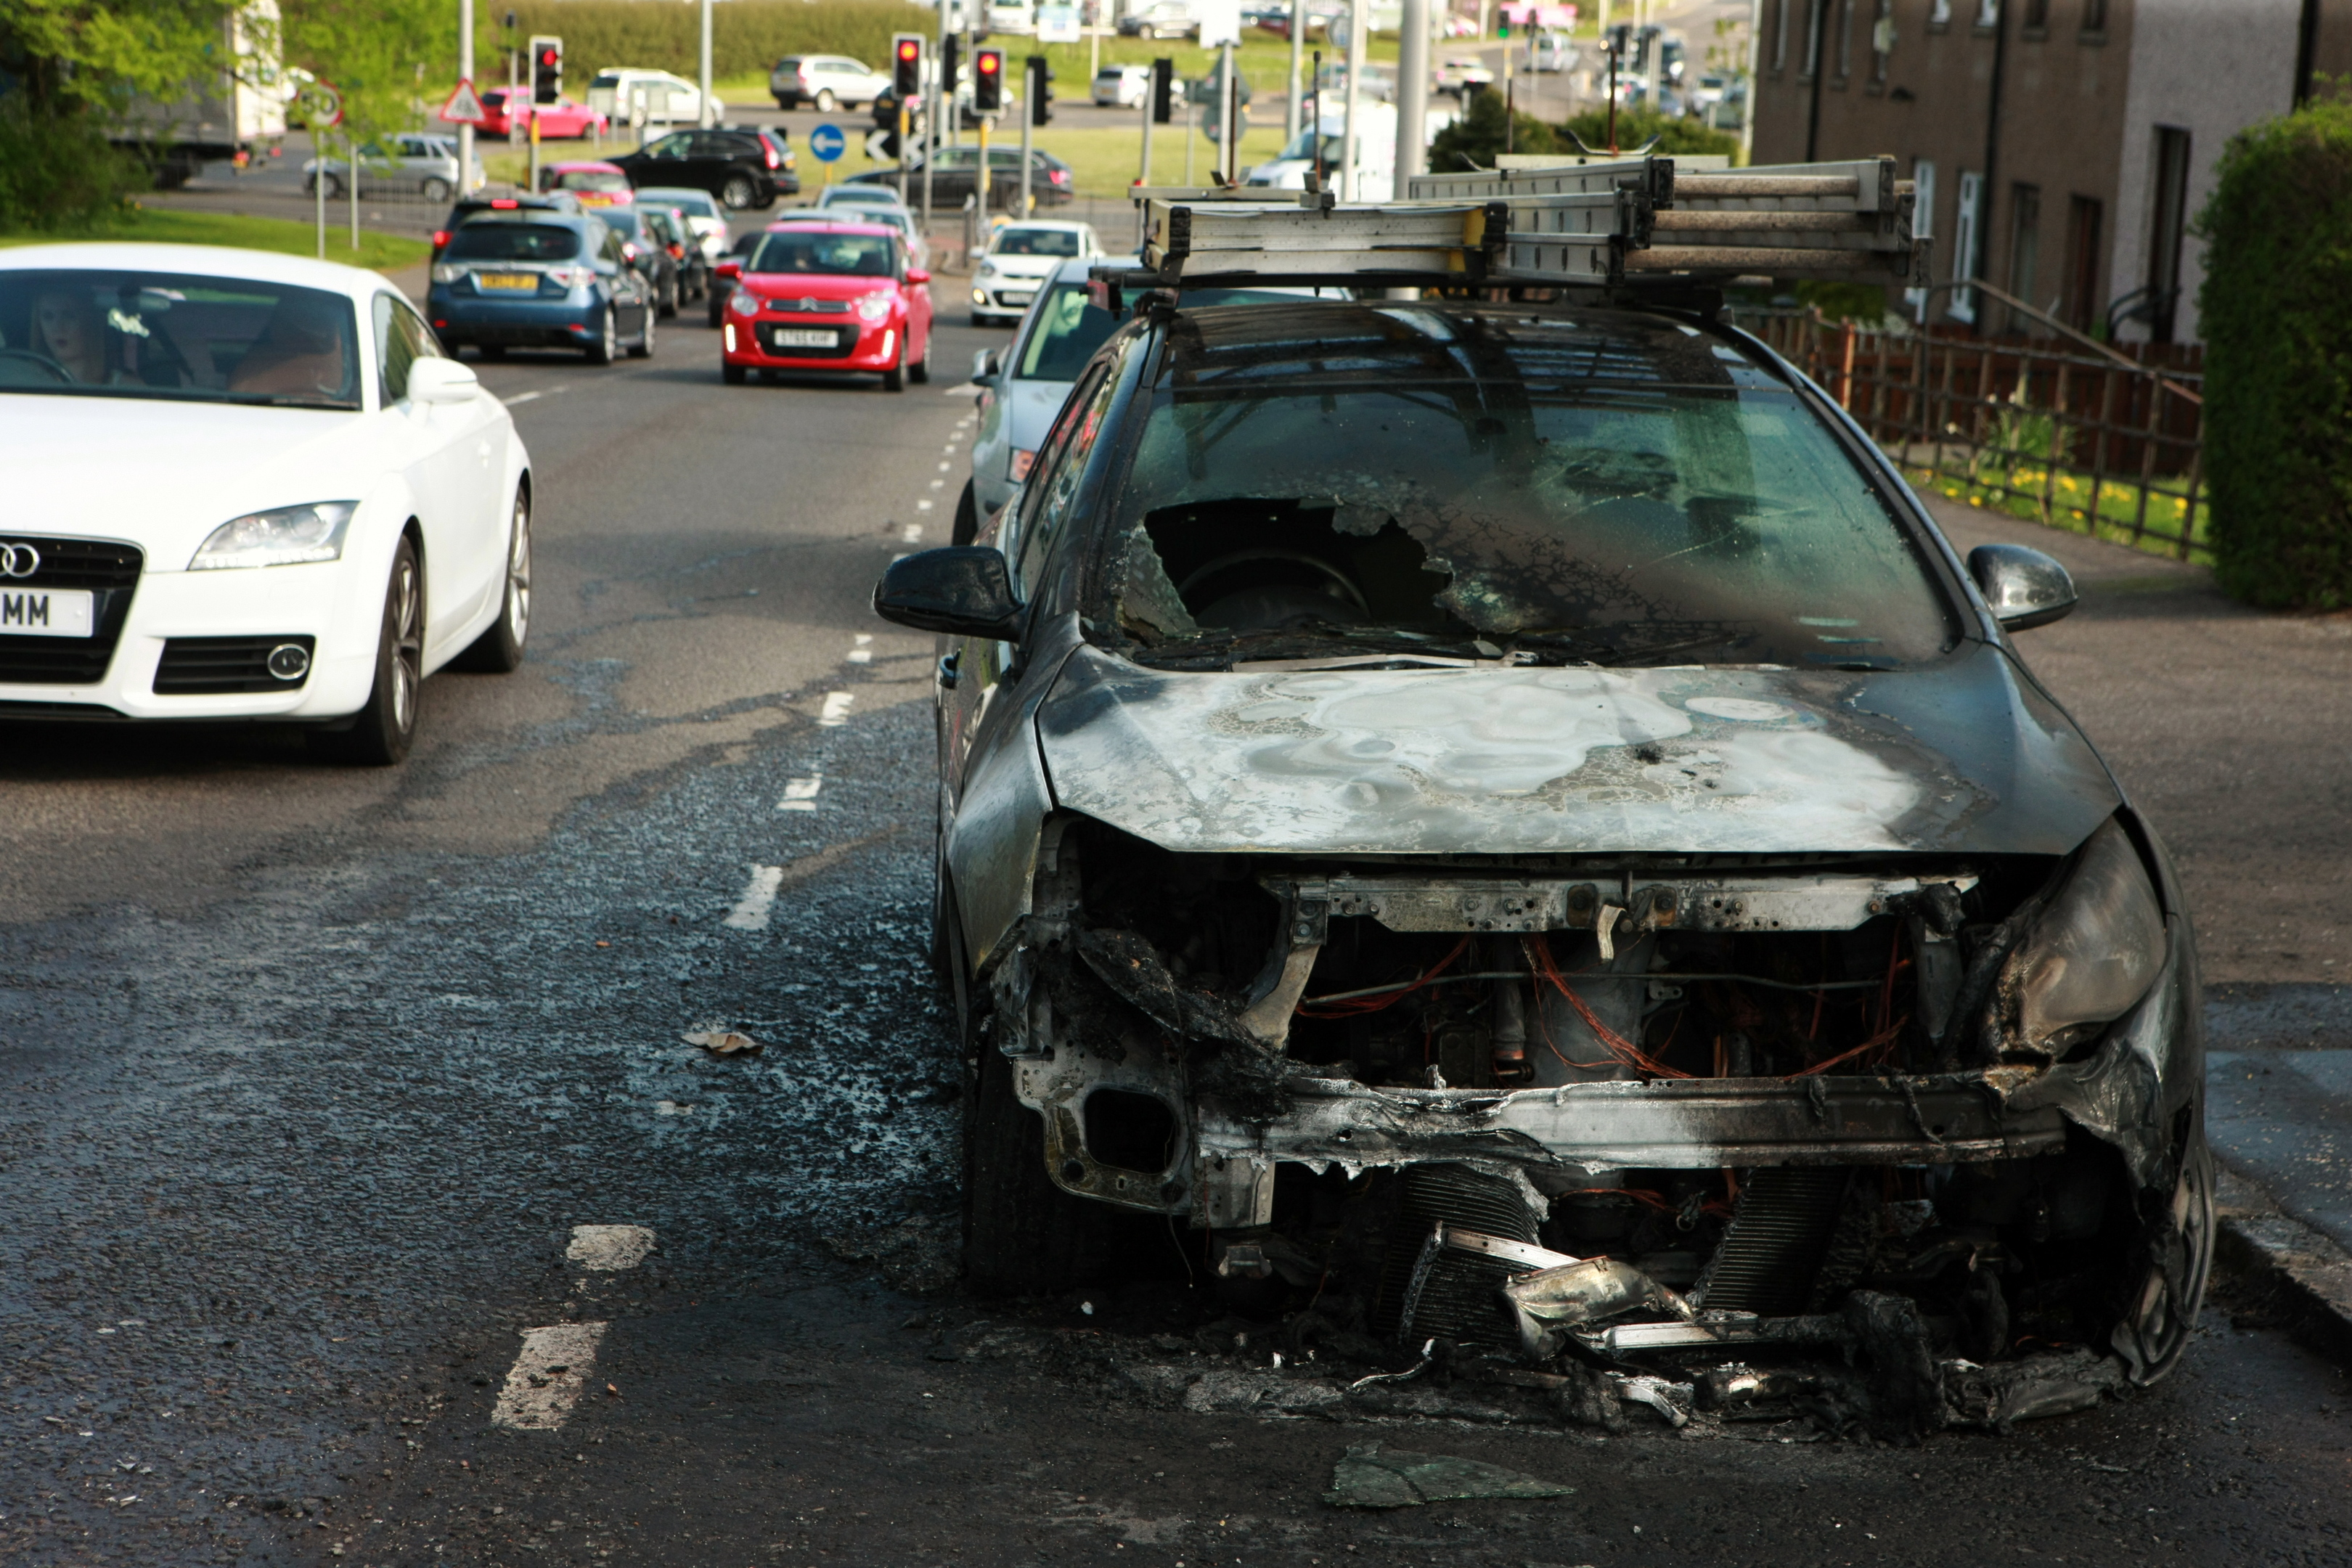 The remains of the vehicle on Myrekirk Road.